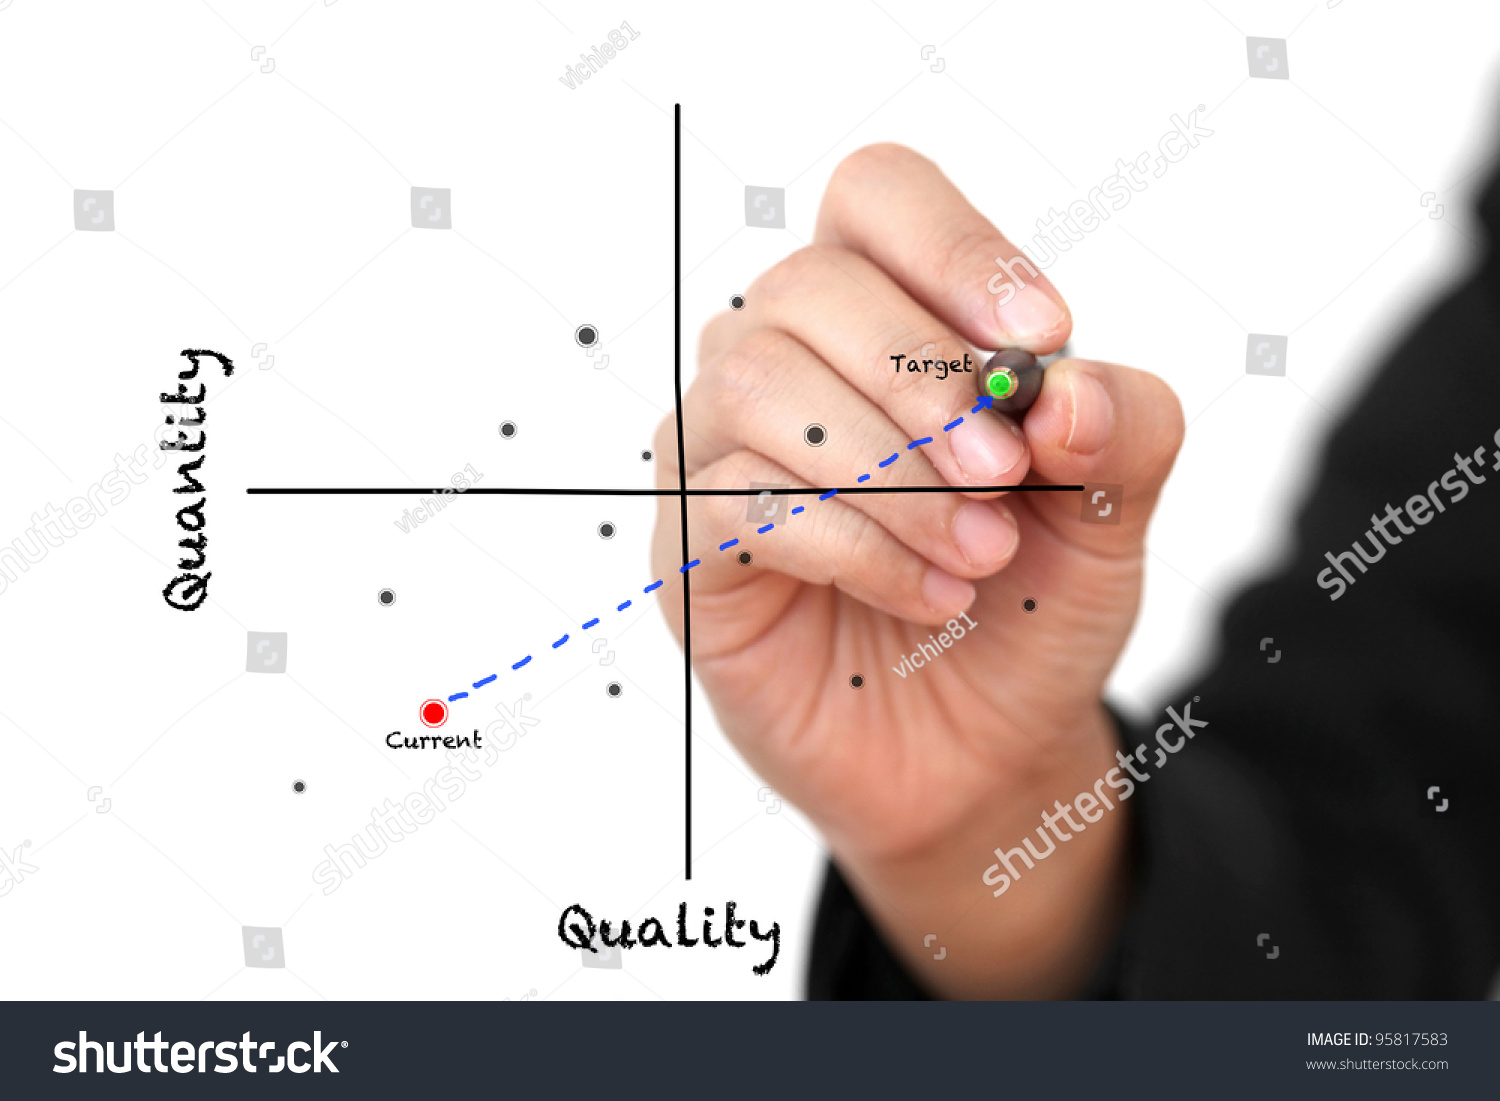 Quantity, Quality, and Proposition Essay